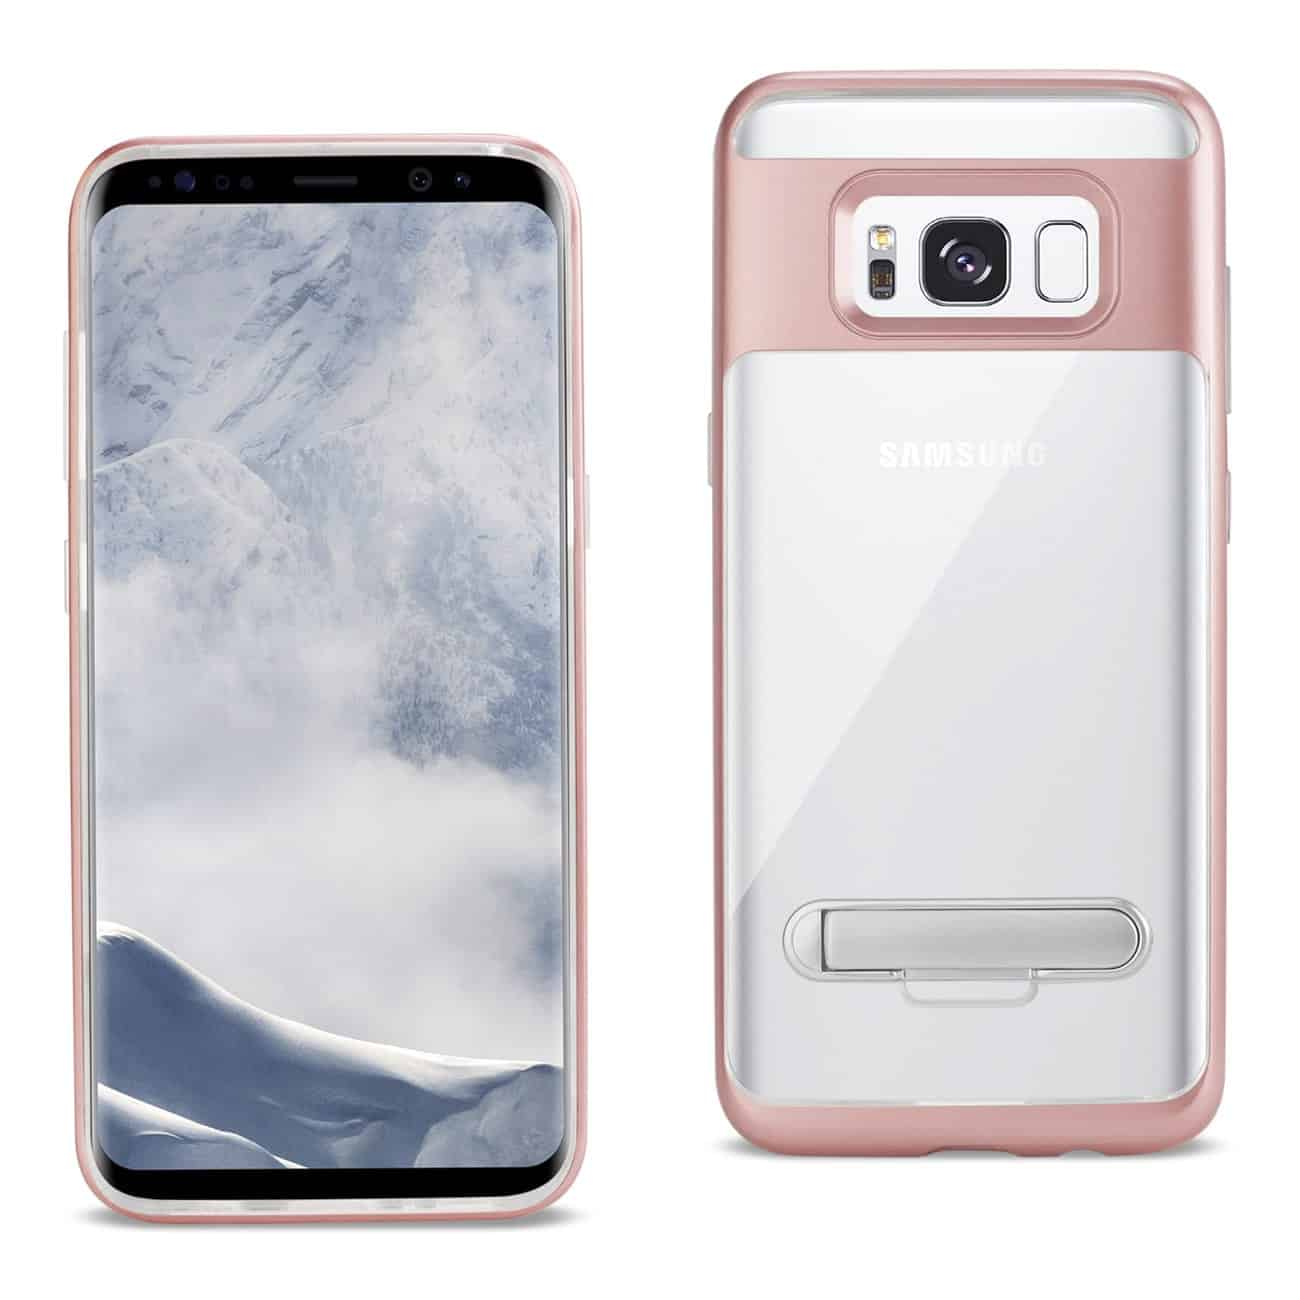 SAMSUNG GALAXY S8 EDGE/ S8 PLUS TRANSPRANT BUMPER CASE WITH KICKSTAND IN CLEAR ROSE GOLD